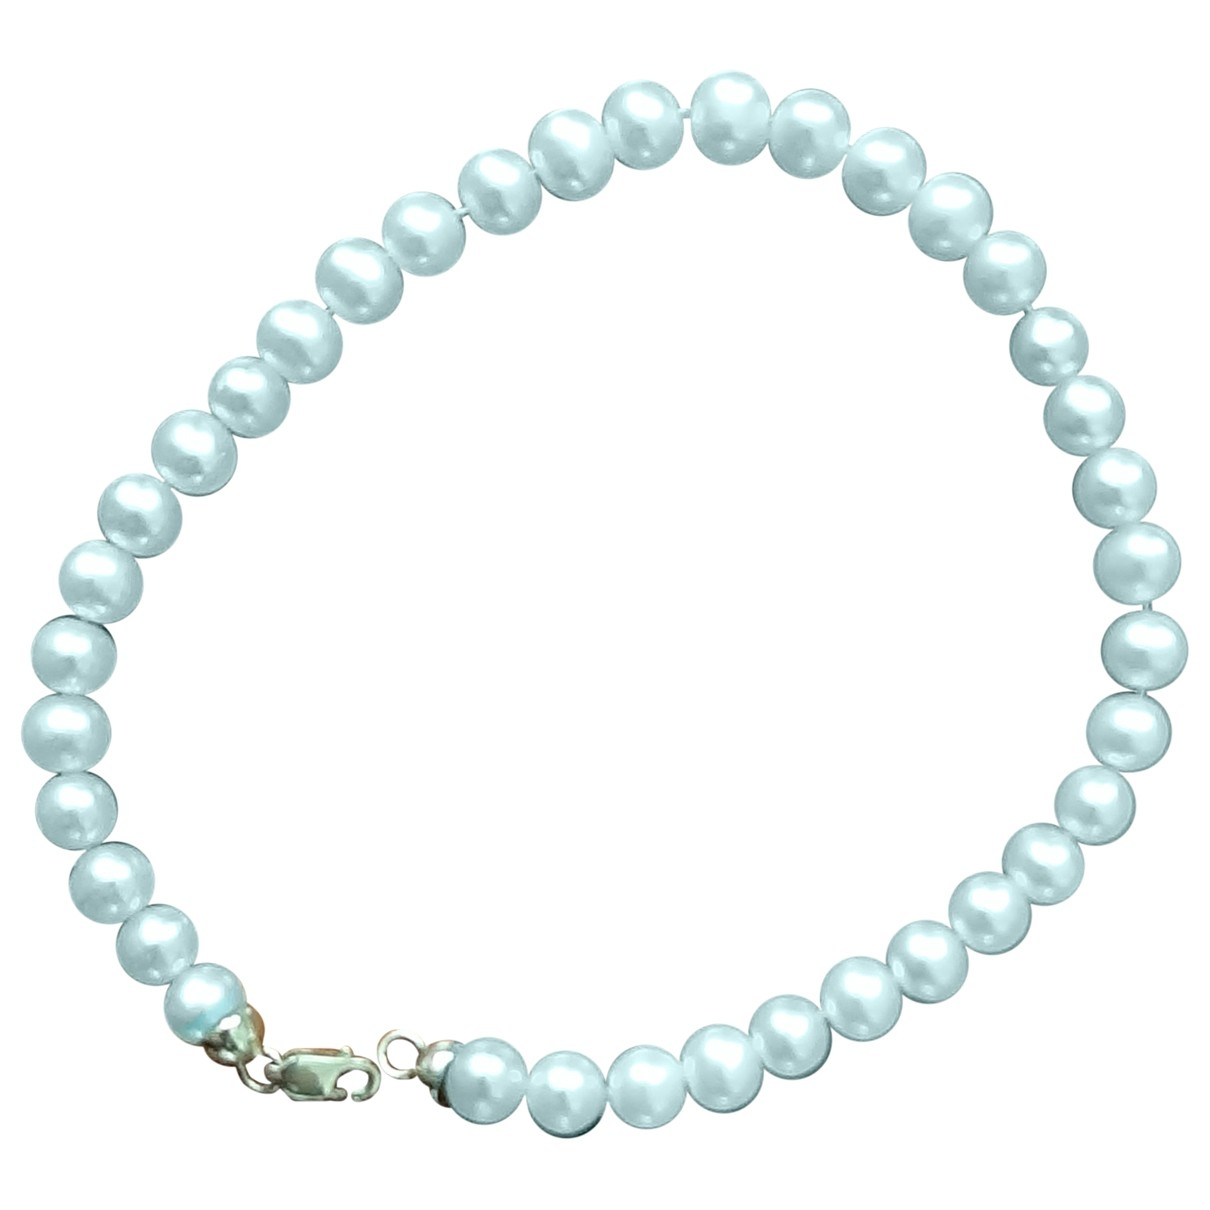 Non Signe / Unsigned Nacre Armband in  Weiss Perlen